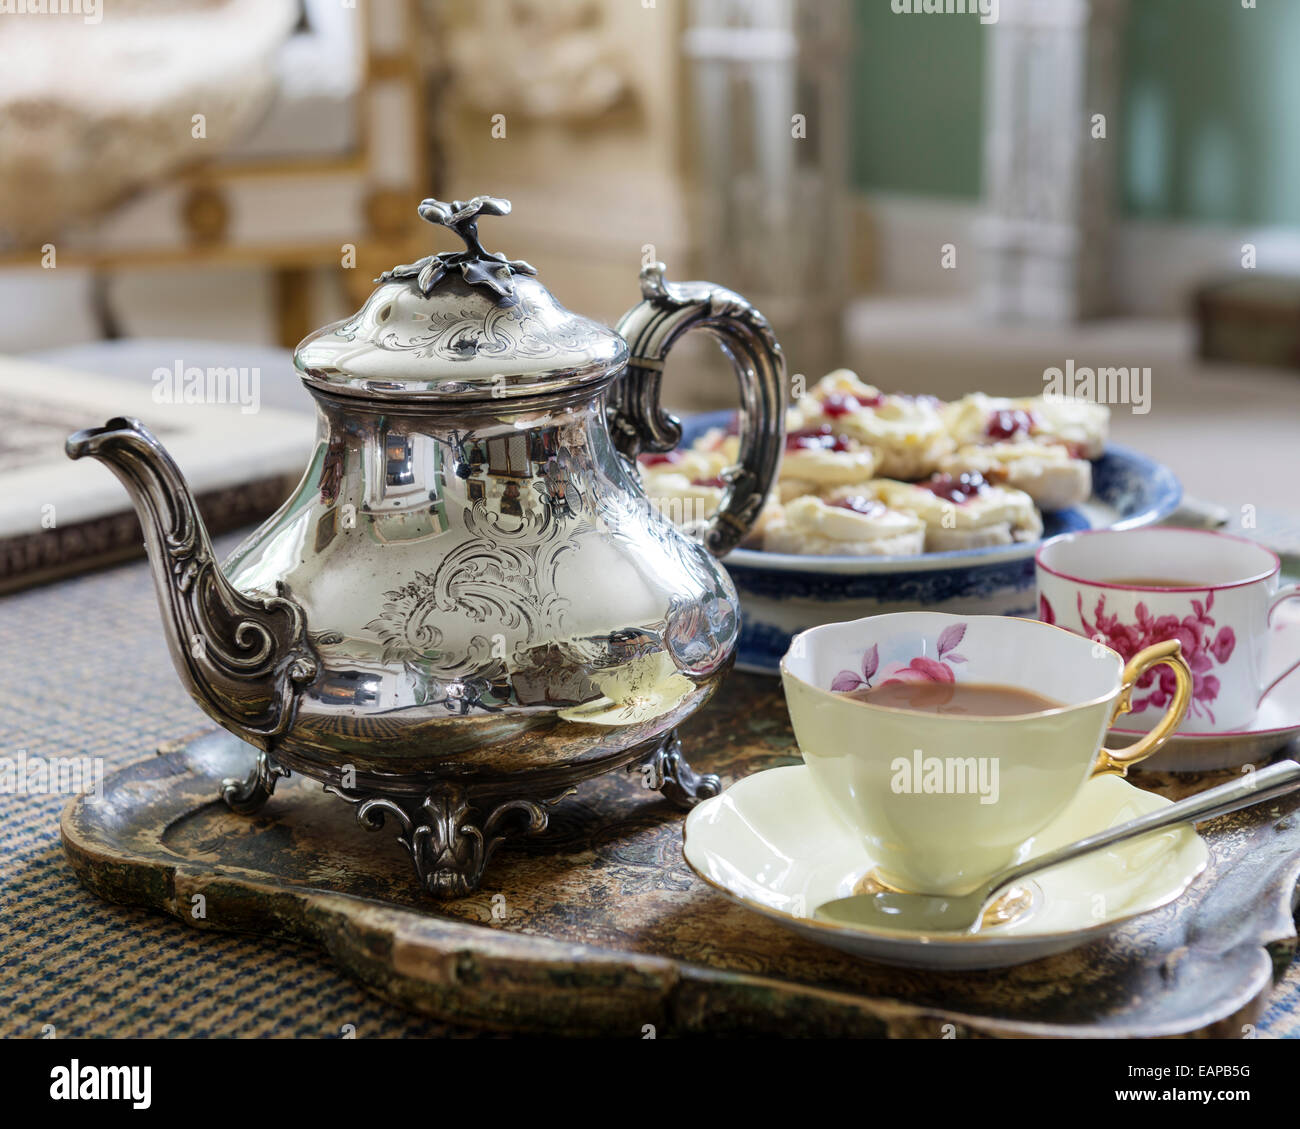 Silver teapot on tray with cups and saucers and scones - Stock Image